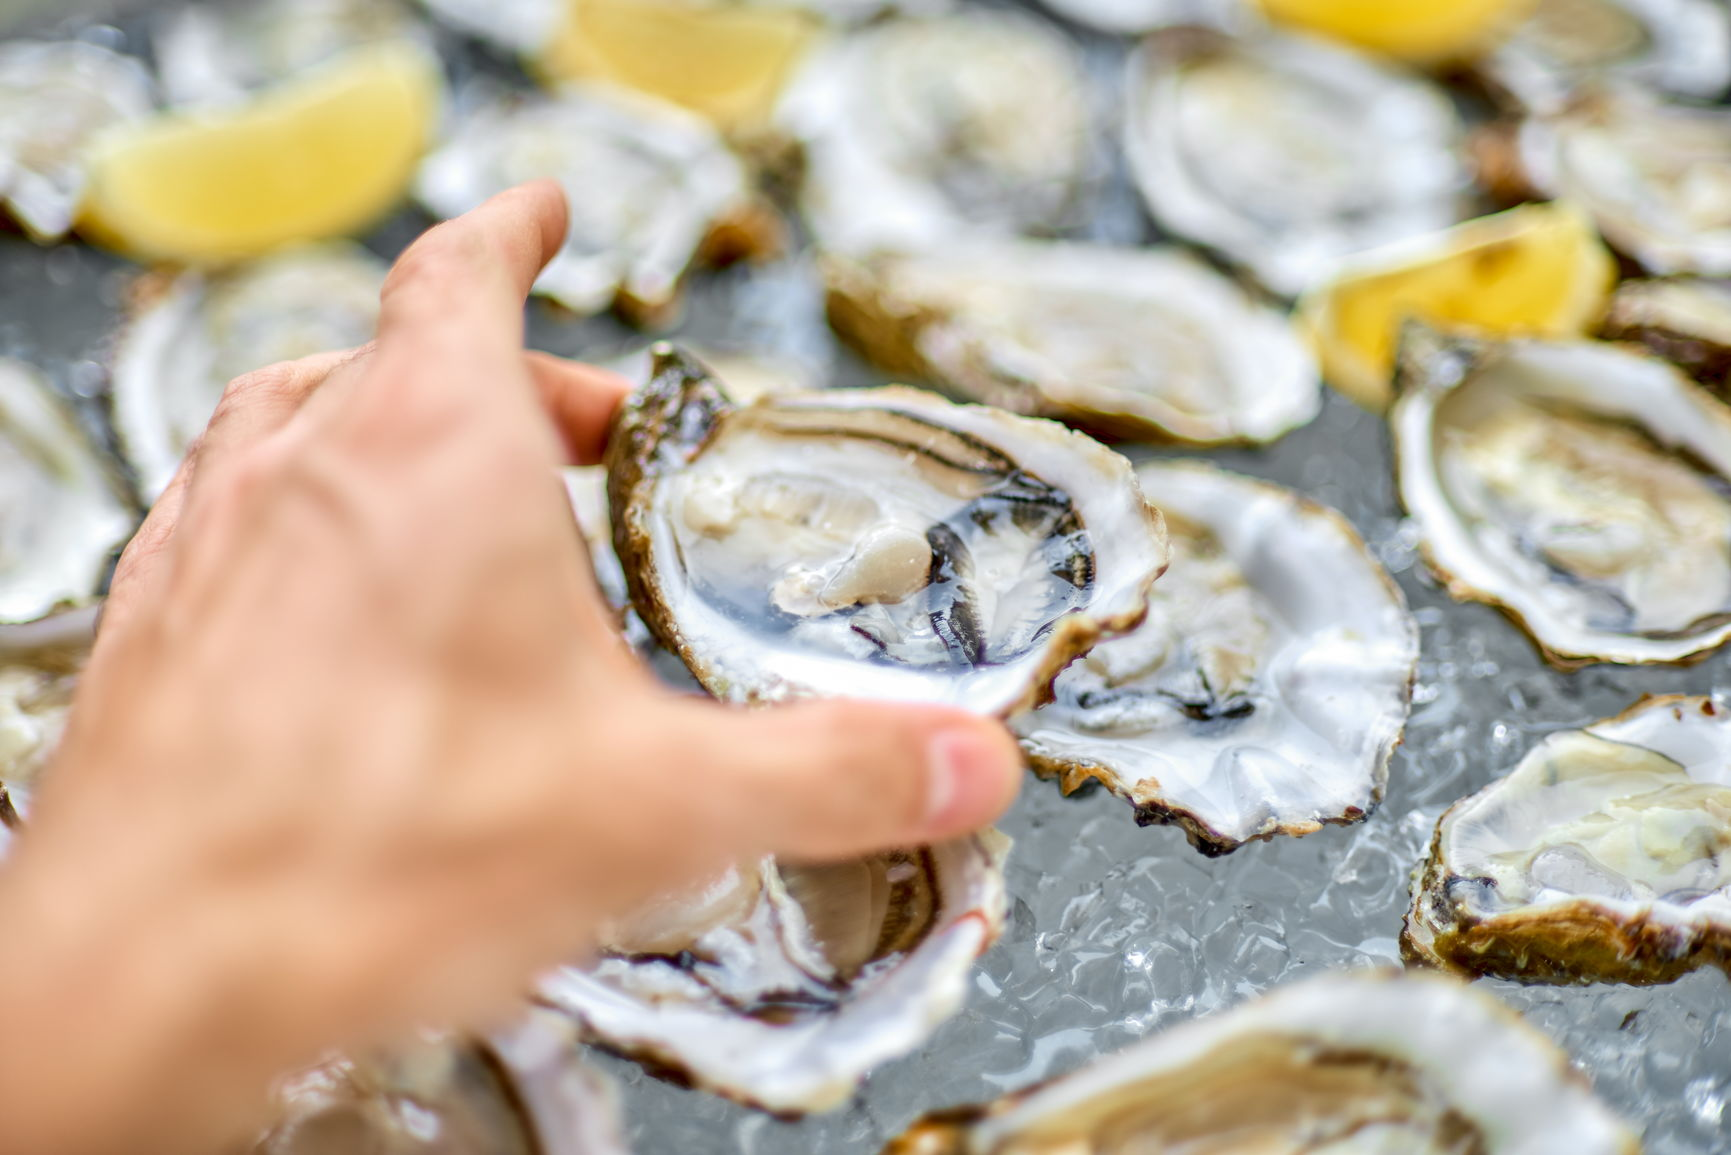 oysters are good for your immune system